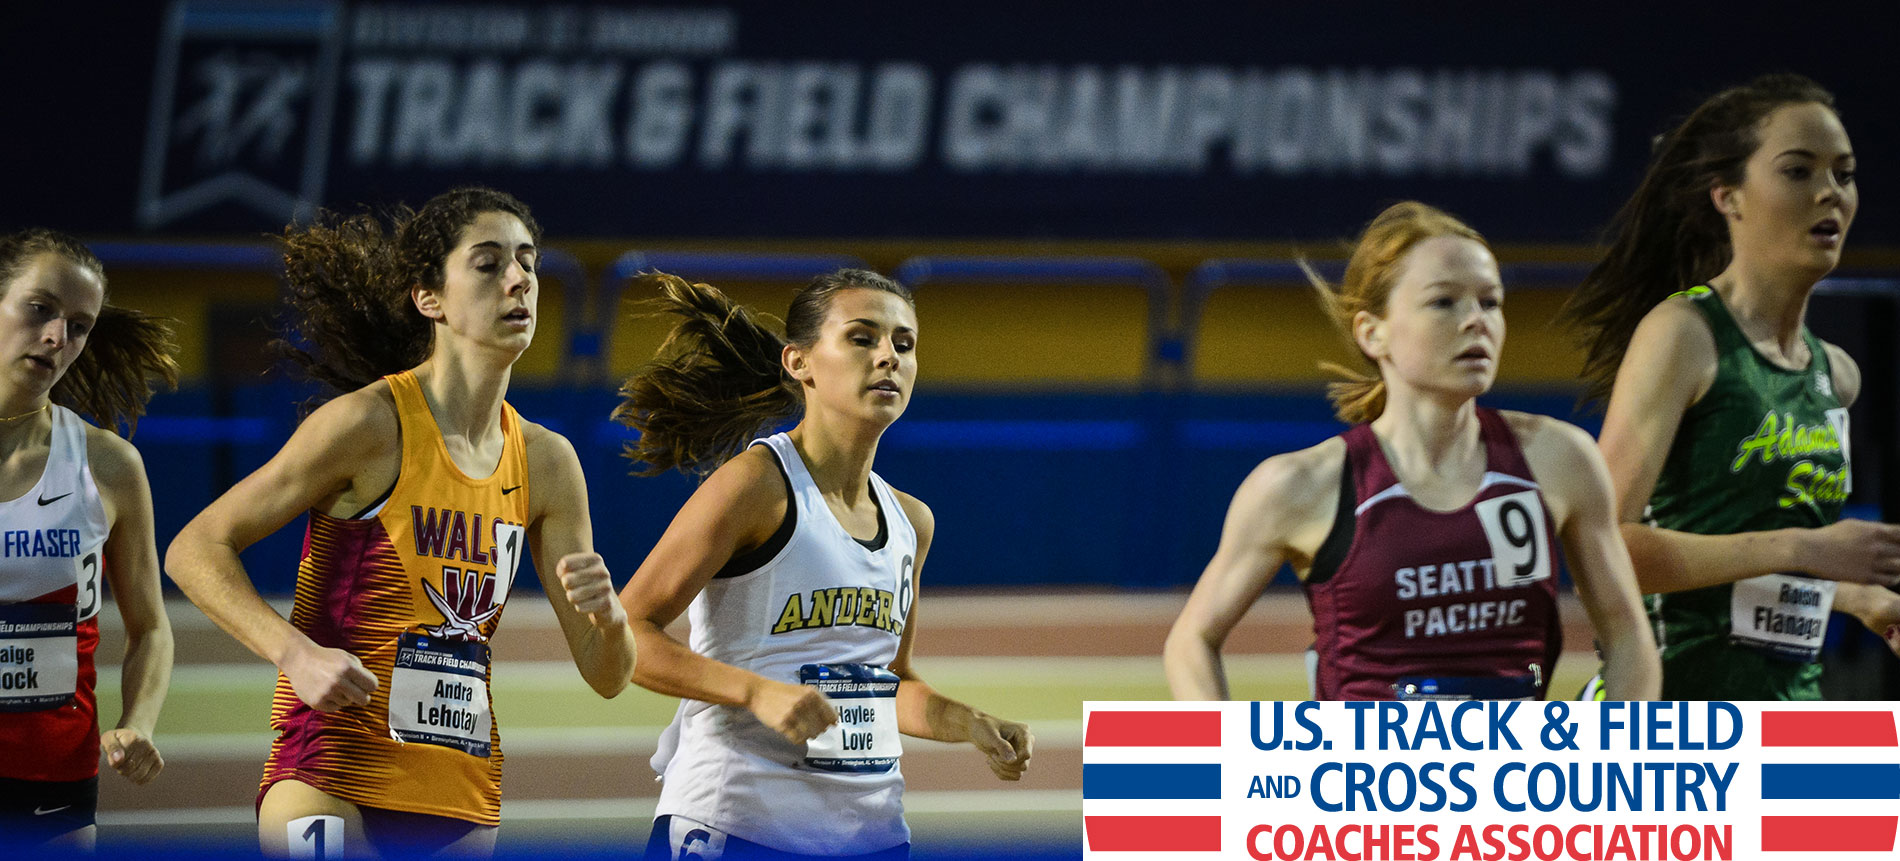 Love Captures USTFCCCA All-Academic Honors